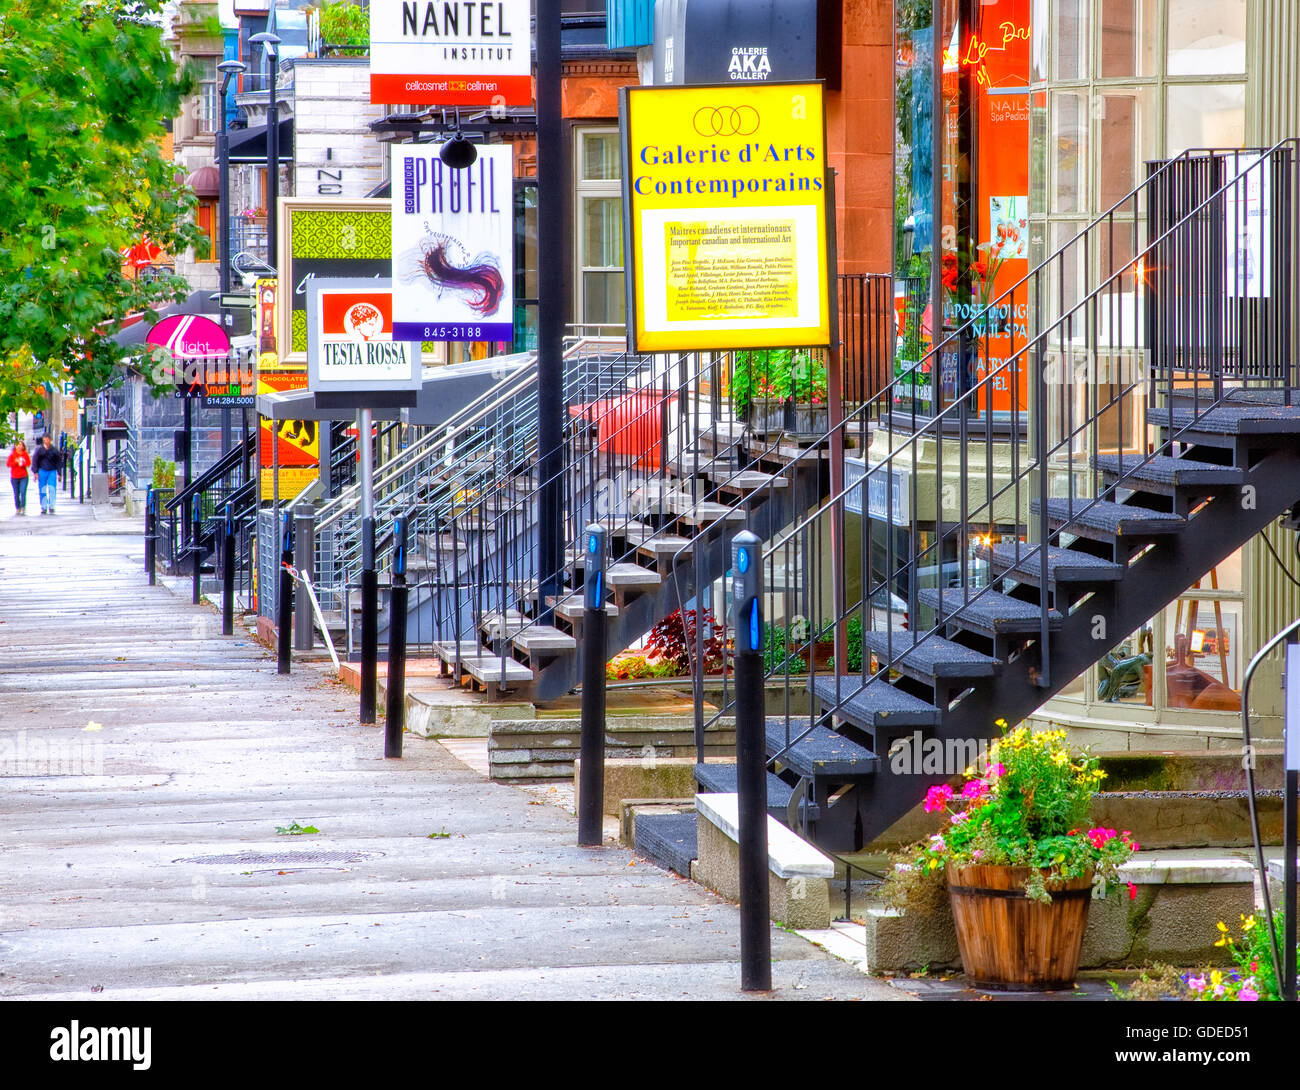 Crescent street in Montreal - Stock Image